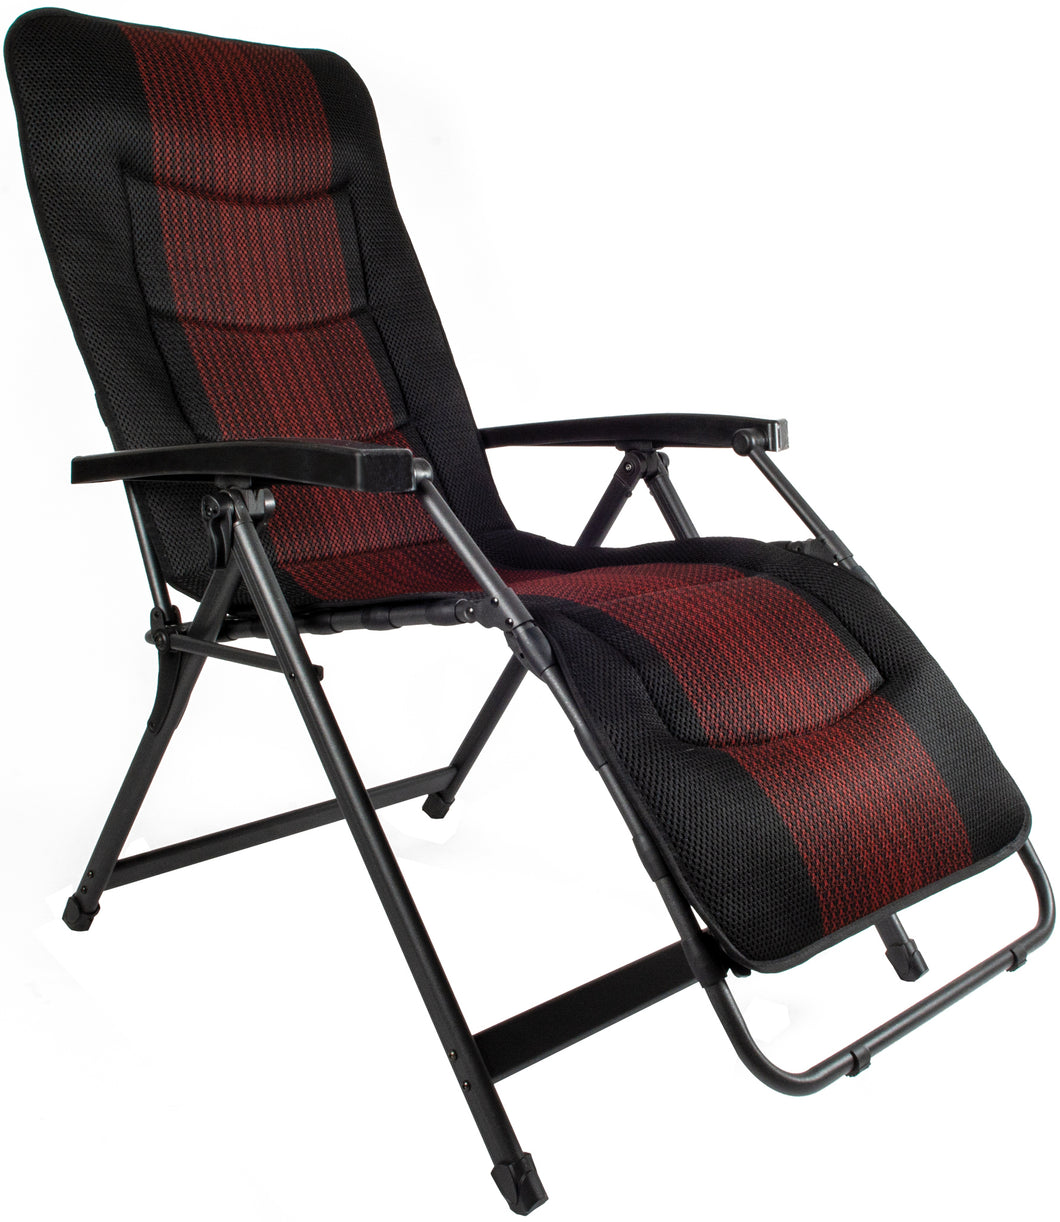 Westfield Outdoors Avantgarde Range Aeronaught Relaxer In Deluxe Red